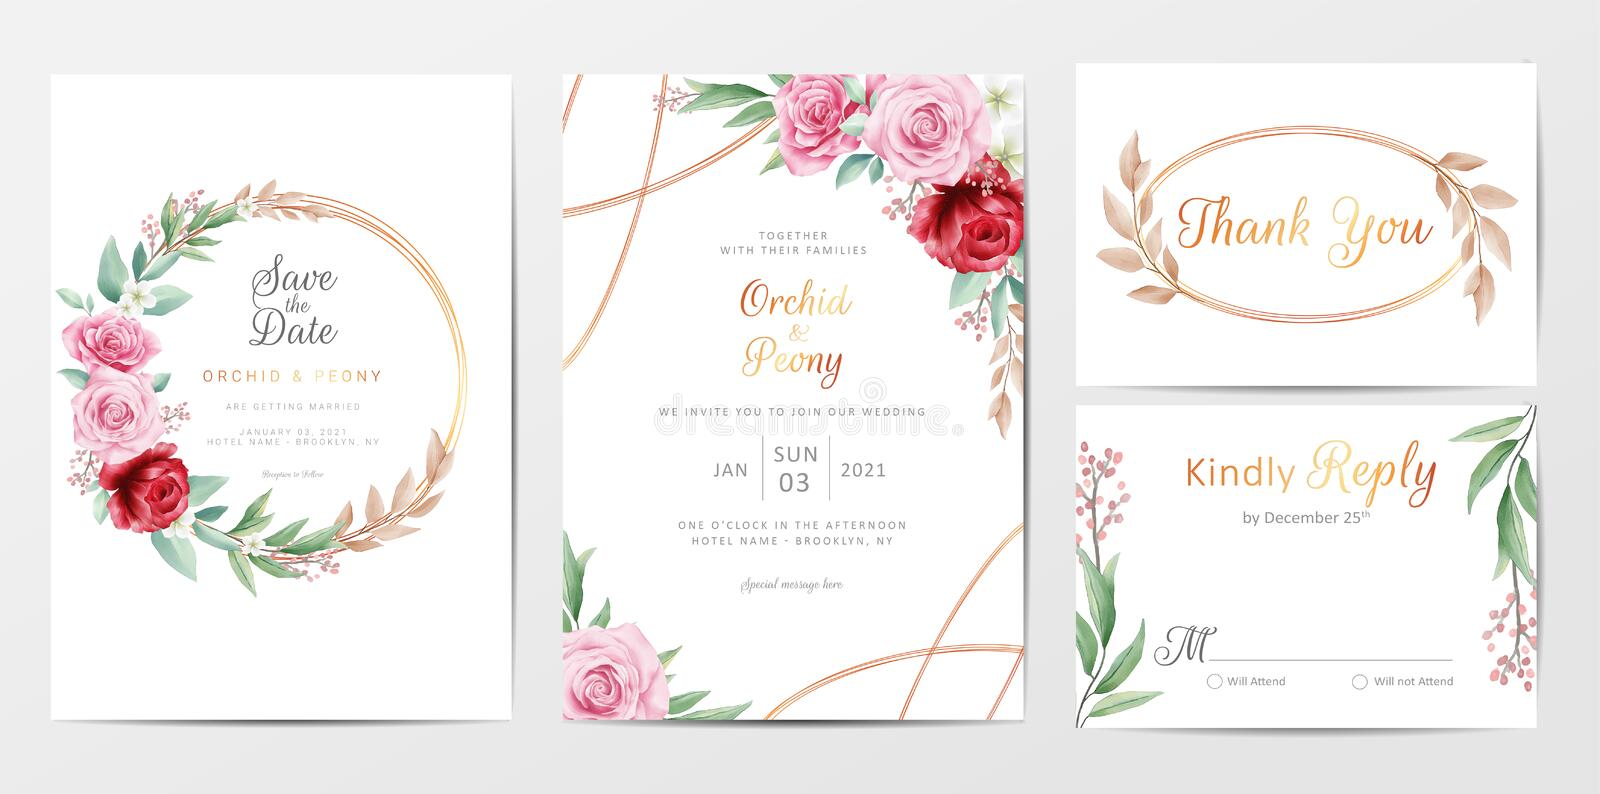 Elegant golden flowers wedding invitation cards template set. Save the date, invitation, greeting, thank you, RSVP cards vector editable template vector illustration